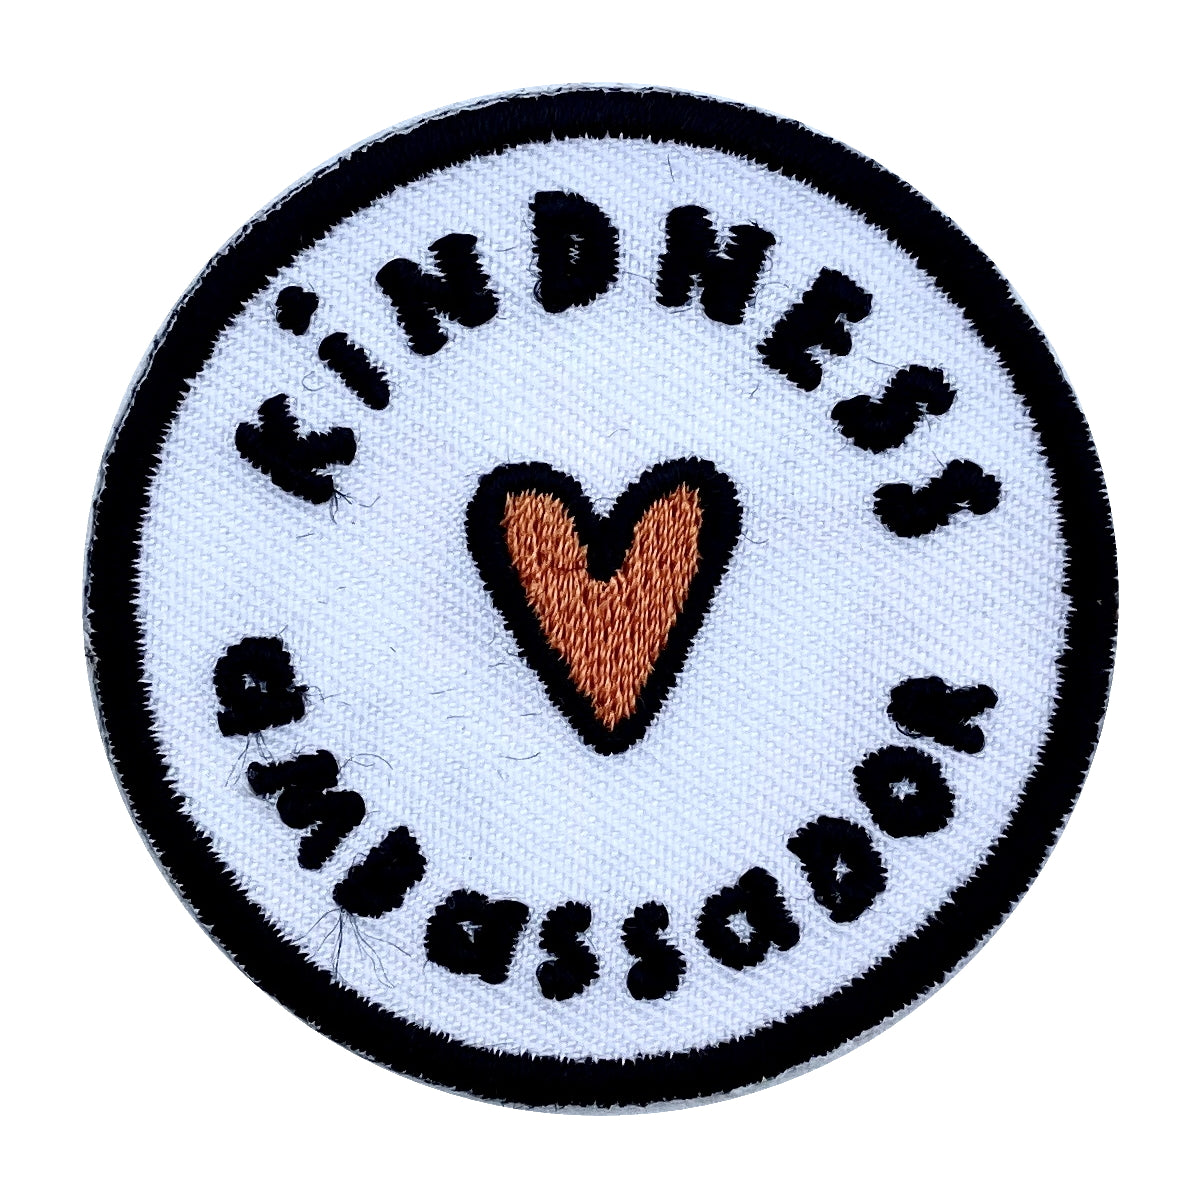 Humanitarian Patch Flower Patch Kindness Patch Love Patch Altruism Patch Activist Patch Travel Patch Be Kind Patch